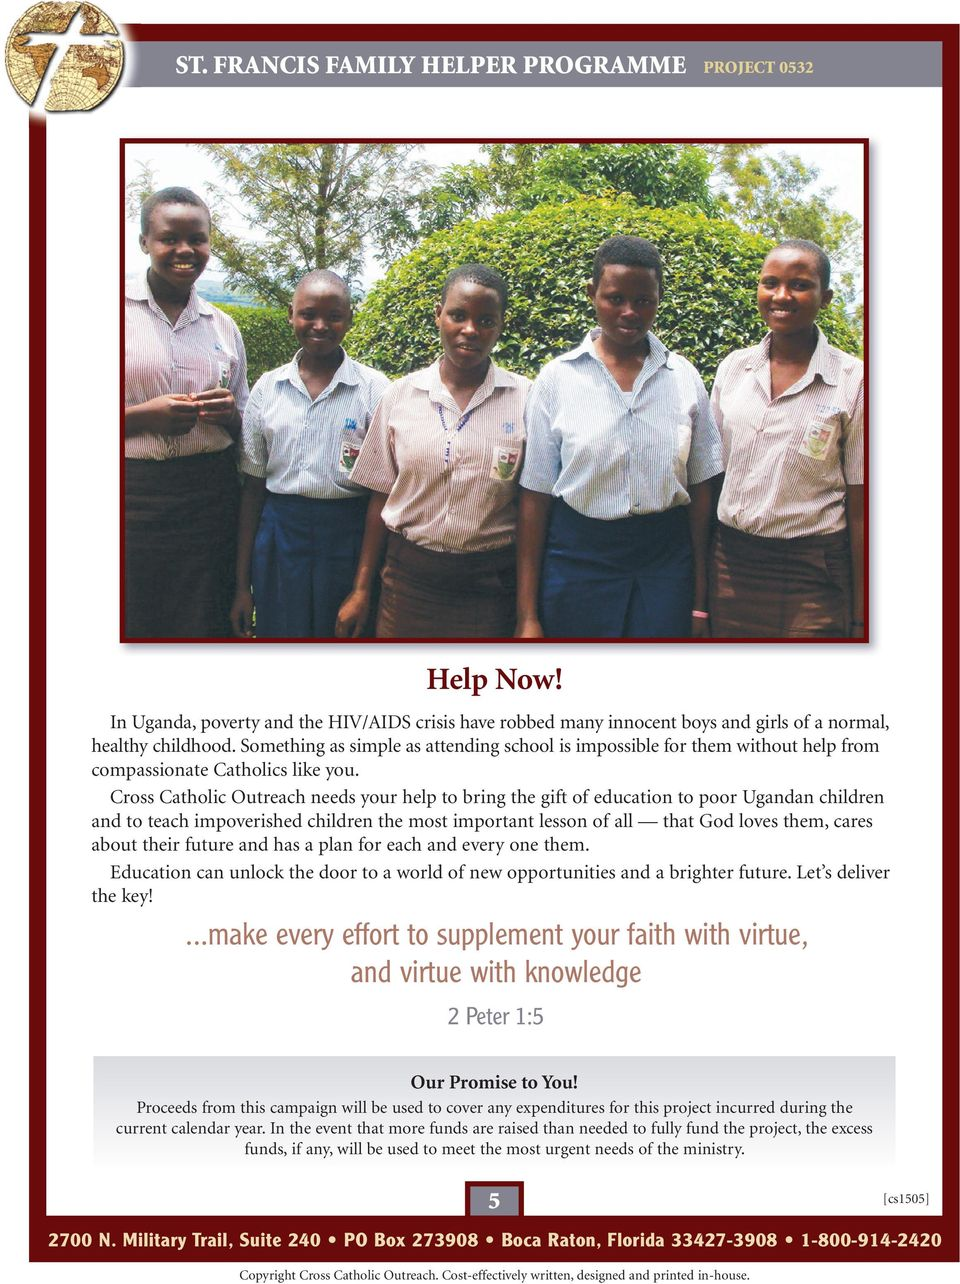 Cross Catholic Outreach needs your help to bring the gift of education to poor Ugandan children and to teach impoverished children the most important lesson of all that God loves them, cares about